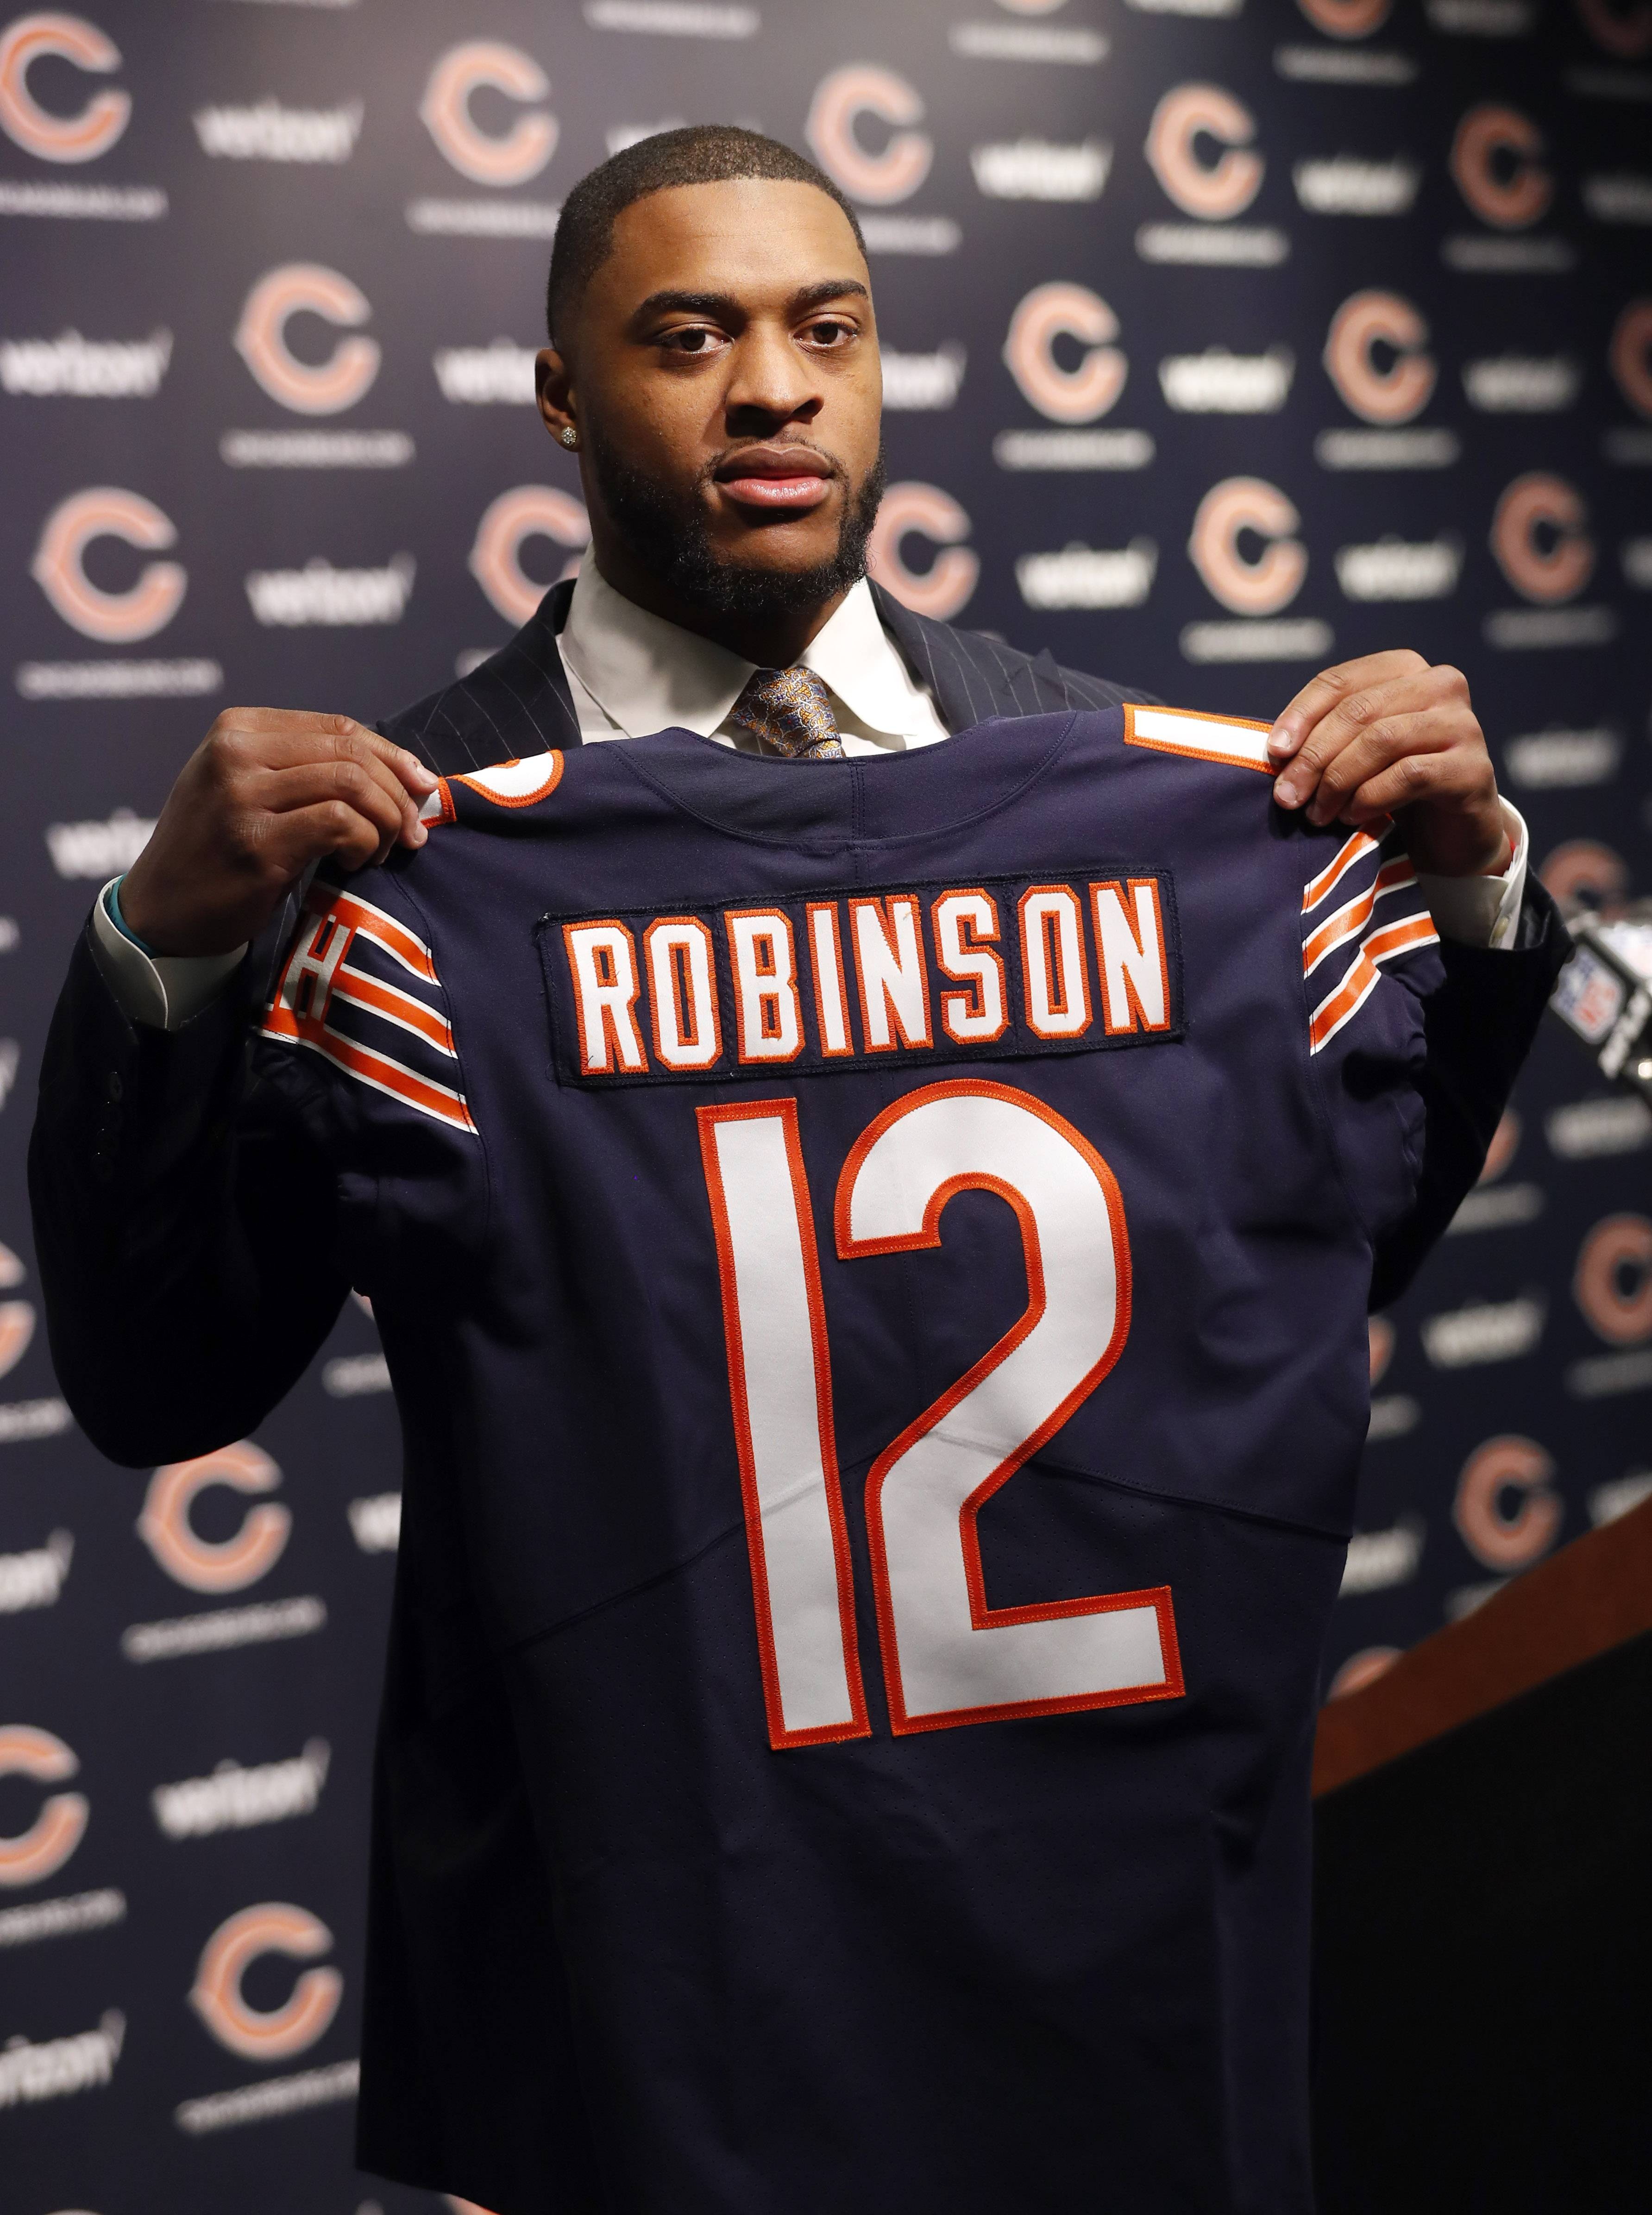 Steve Lundy/slundy@dailyherald.comWide receiver free agent signee Allen Robinson holds up his jersey during a press conference at Halas Hall in Lake Forest Thursday.